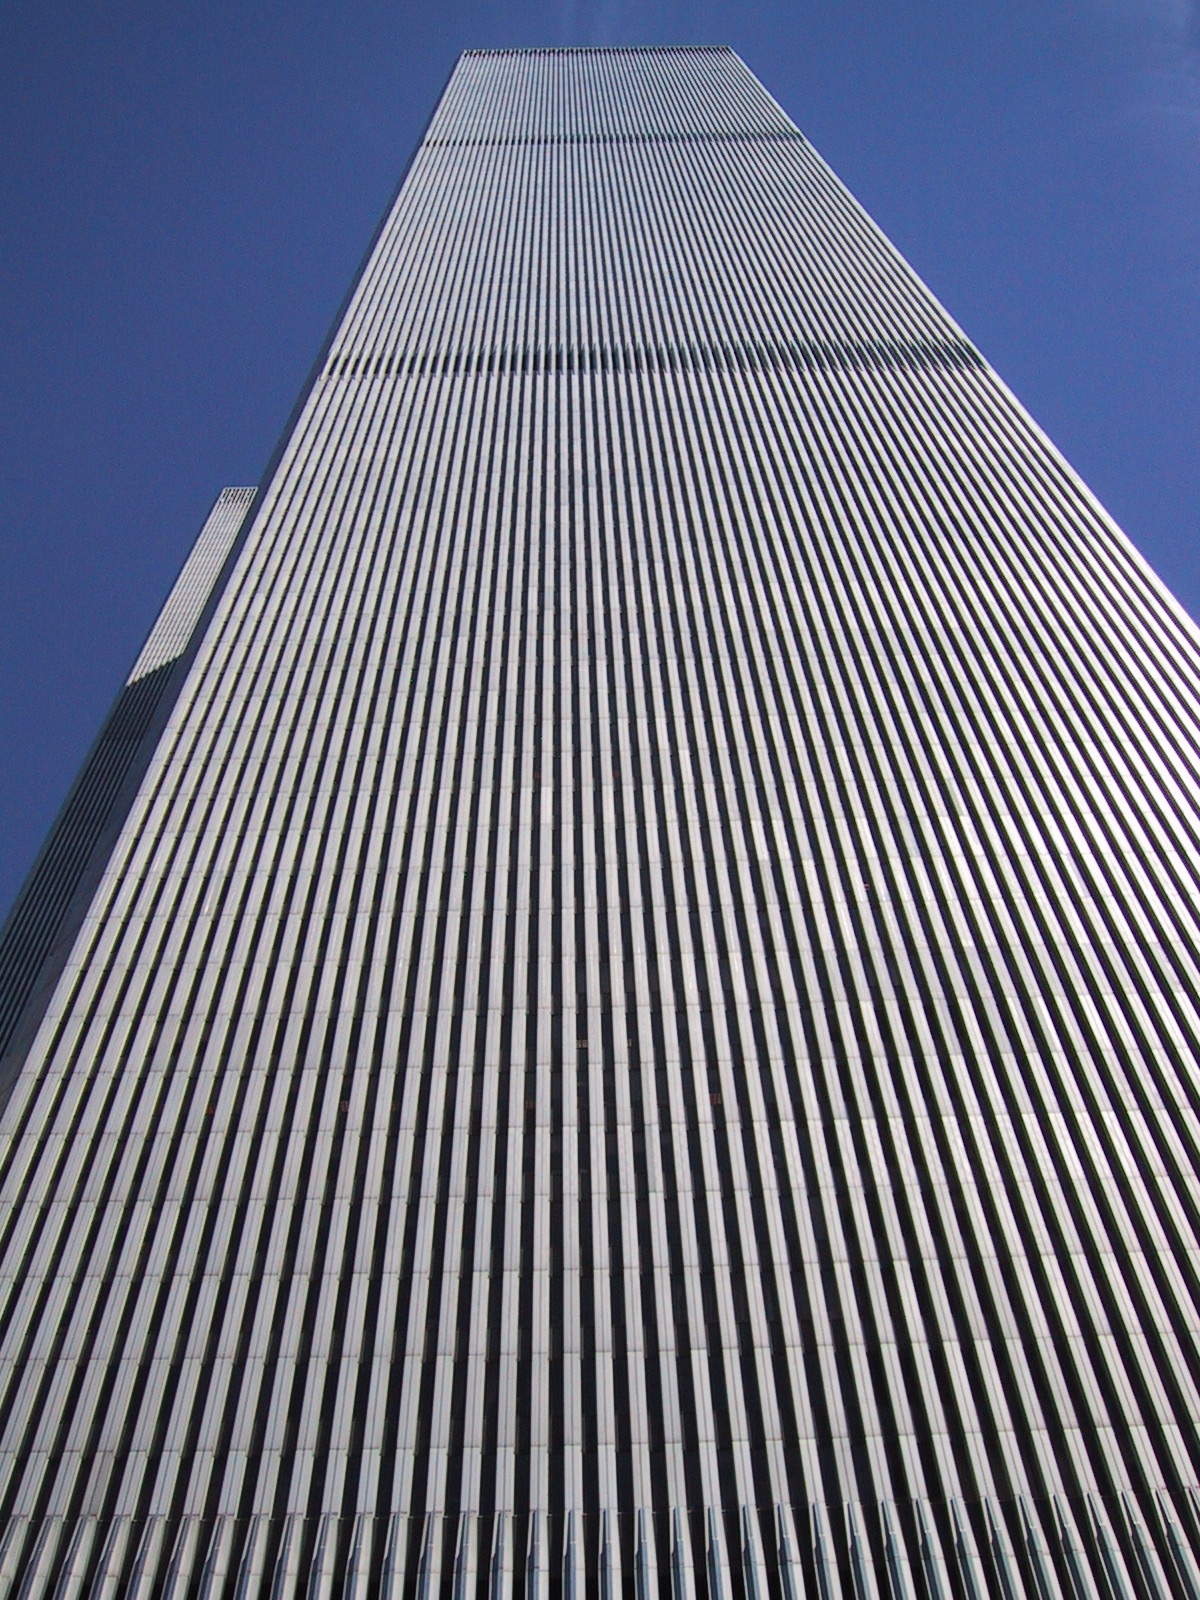 File Y20 Wtc September 5 Jpg Wikimedia Commons